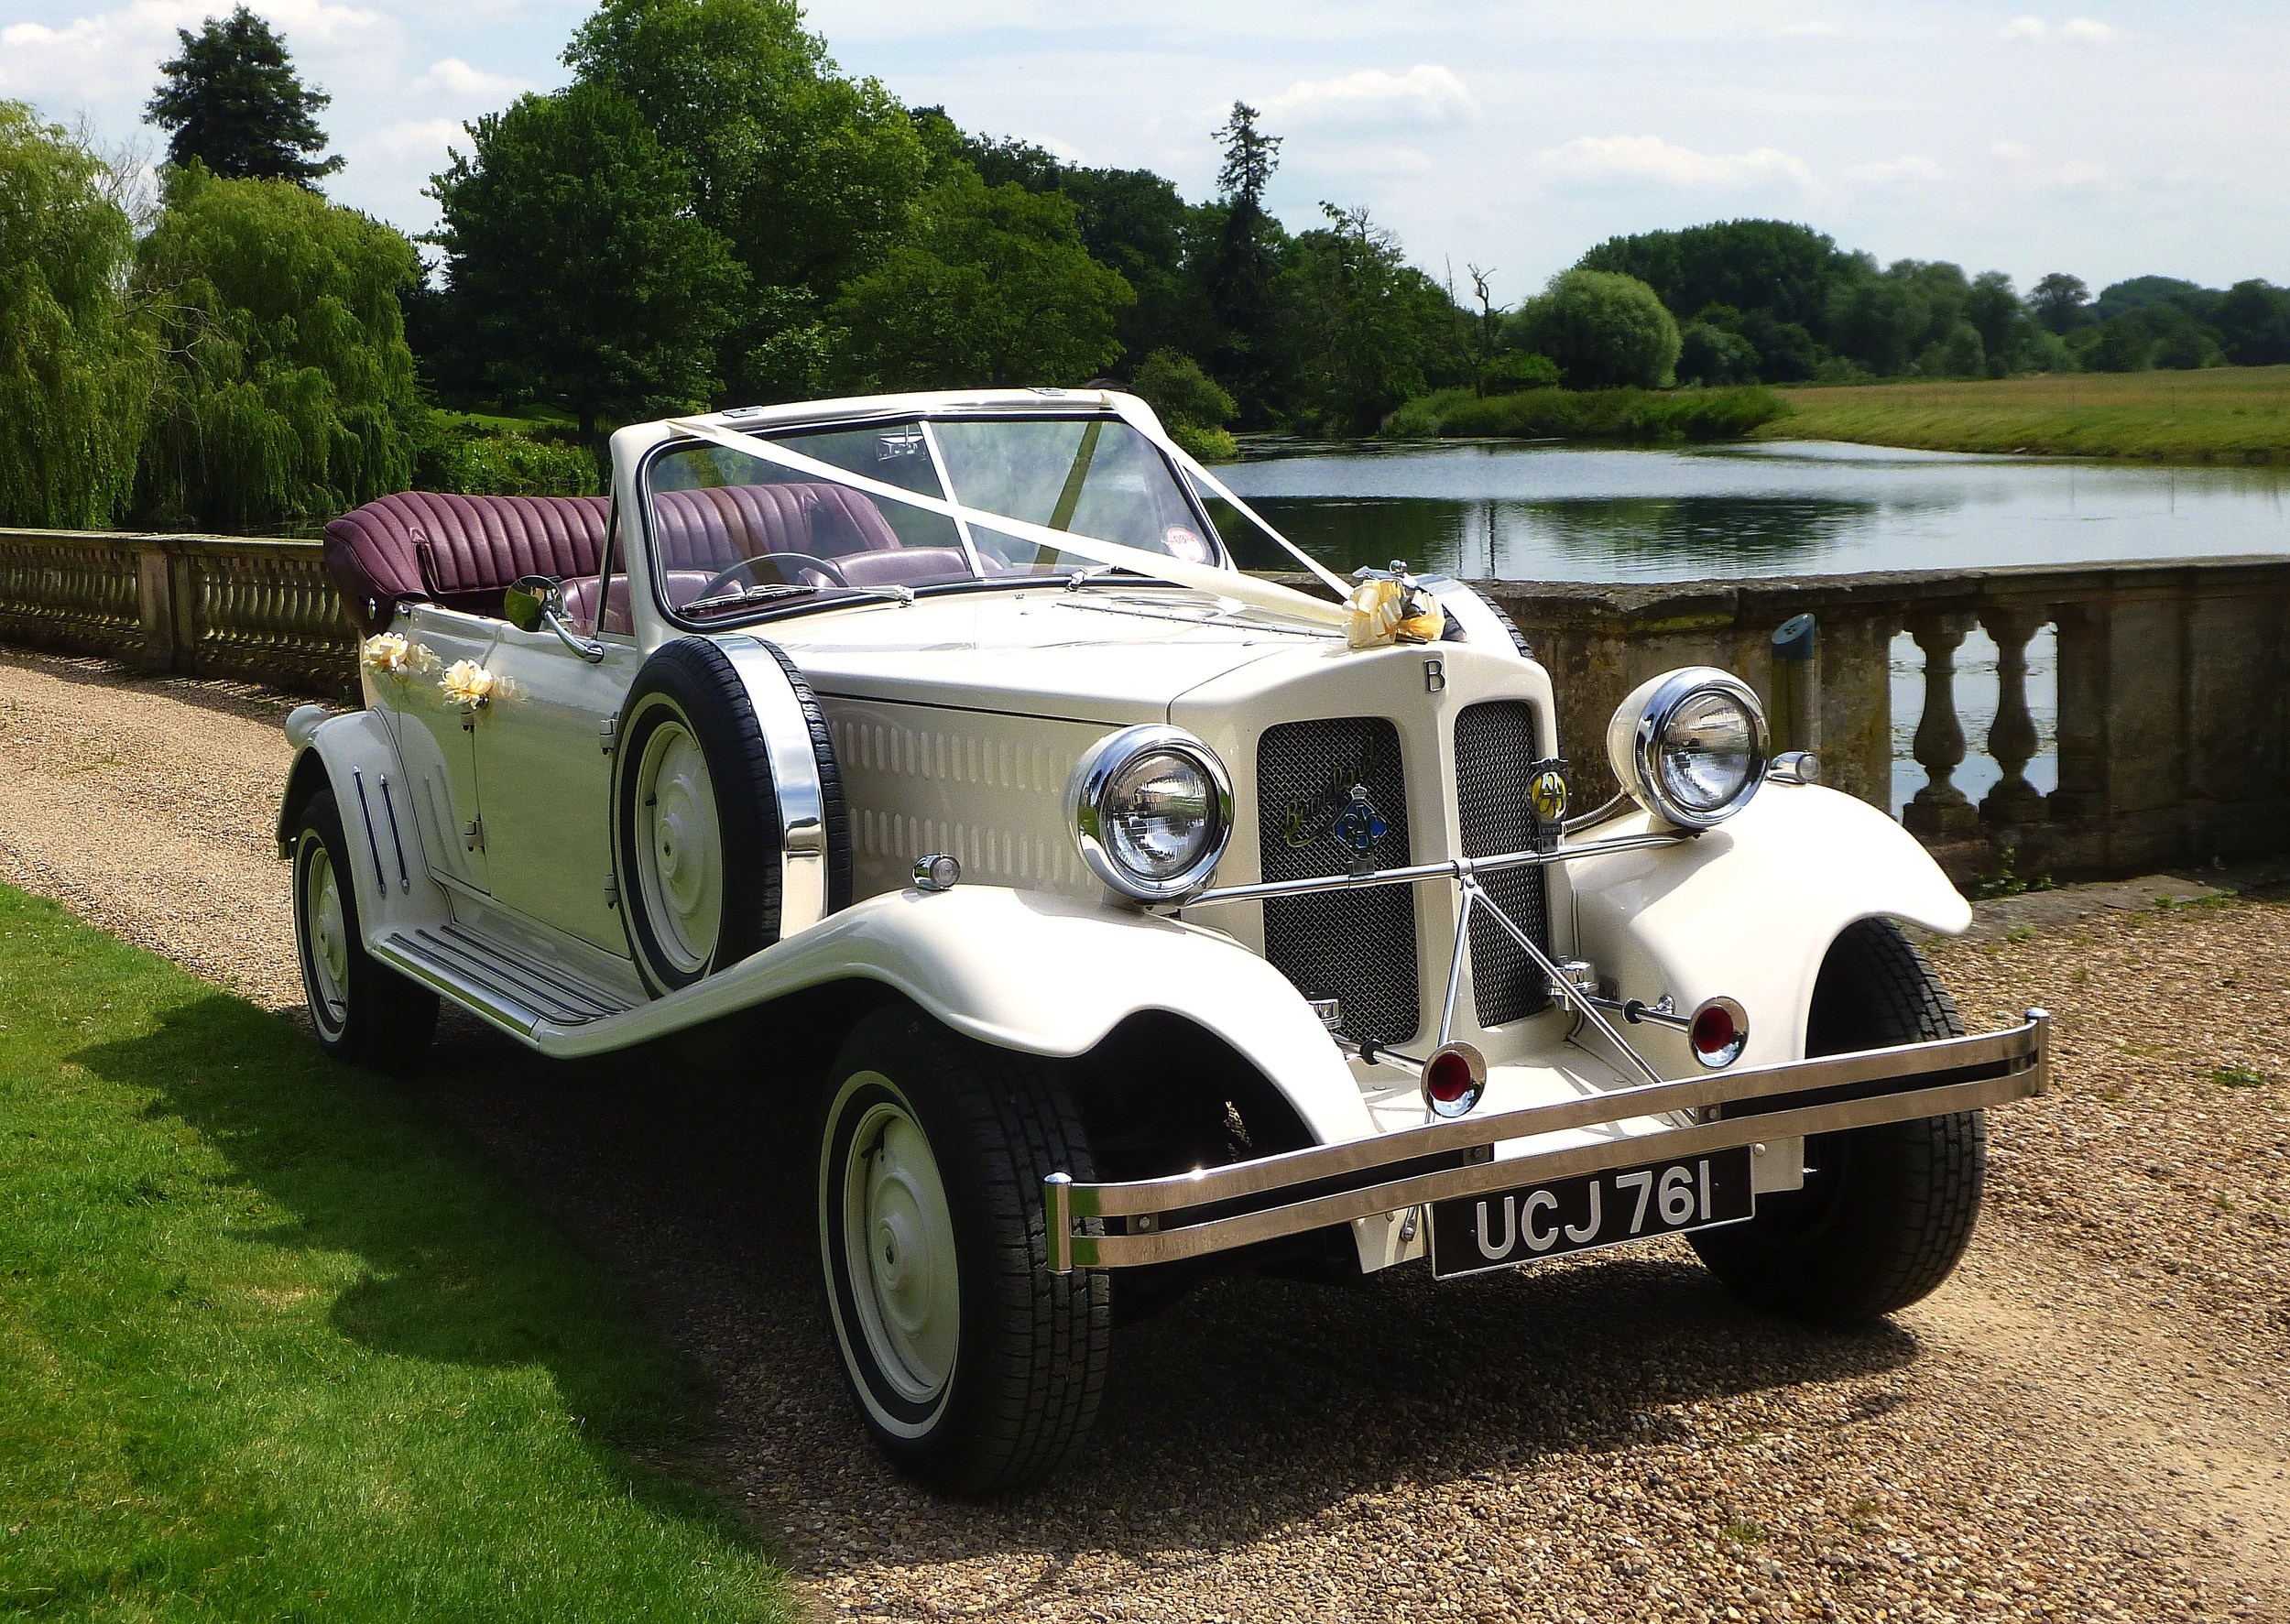 Just time for one last photo of the Beauford at Stoneleigh Abbey on our way home from Khloe and Ryans wedding